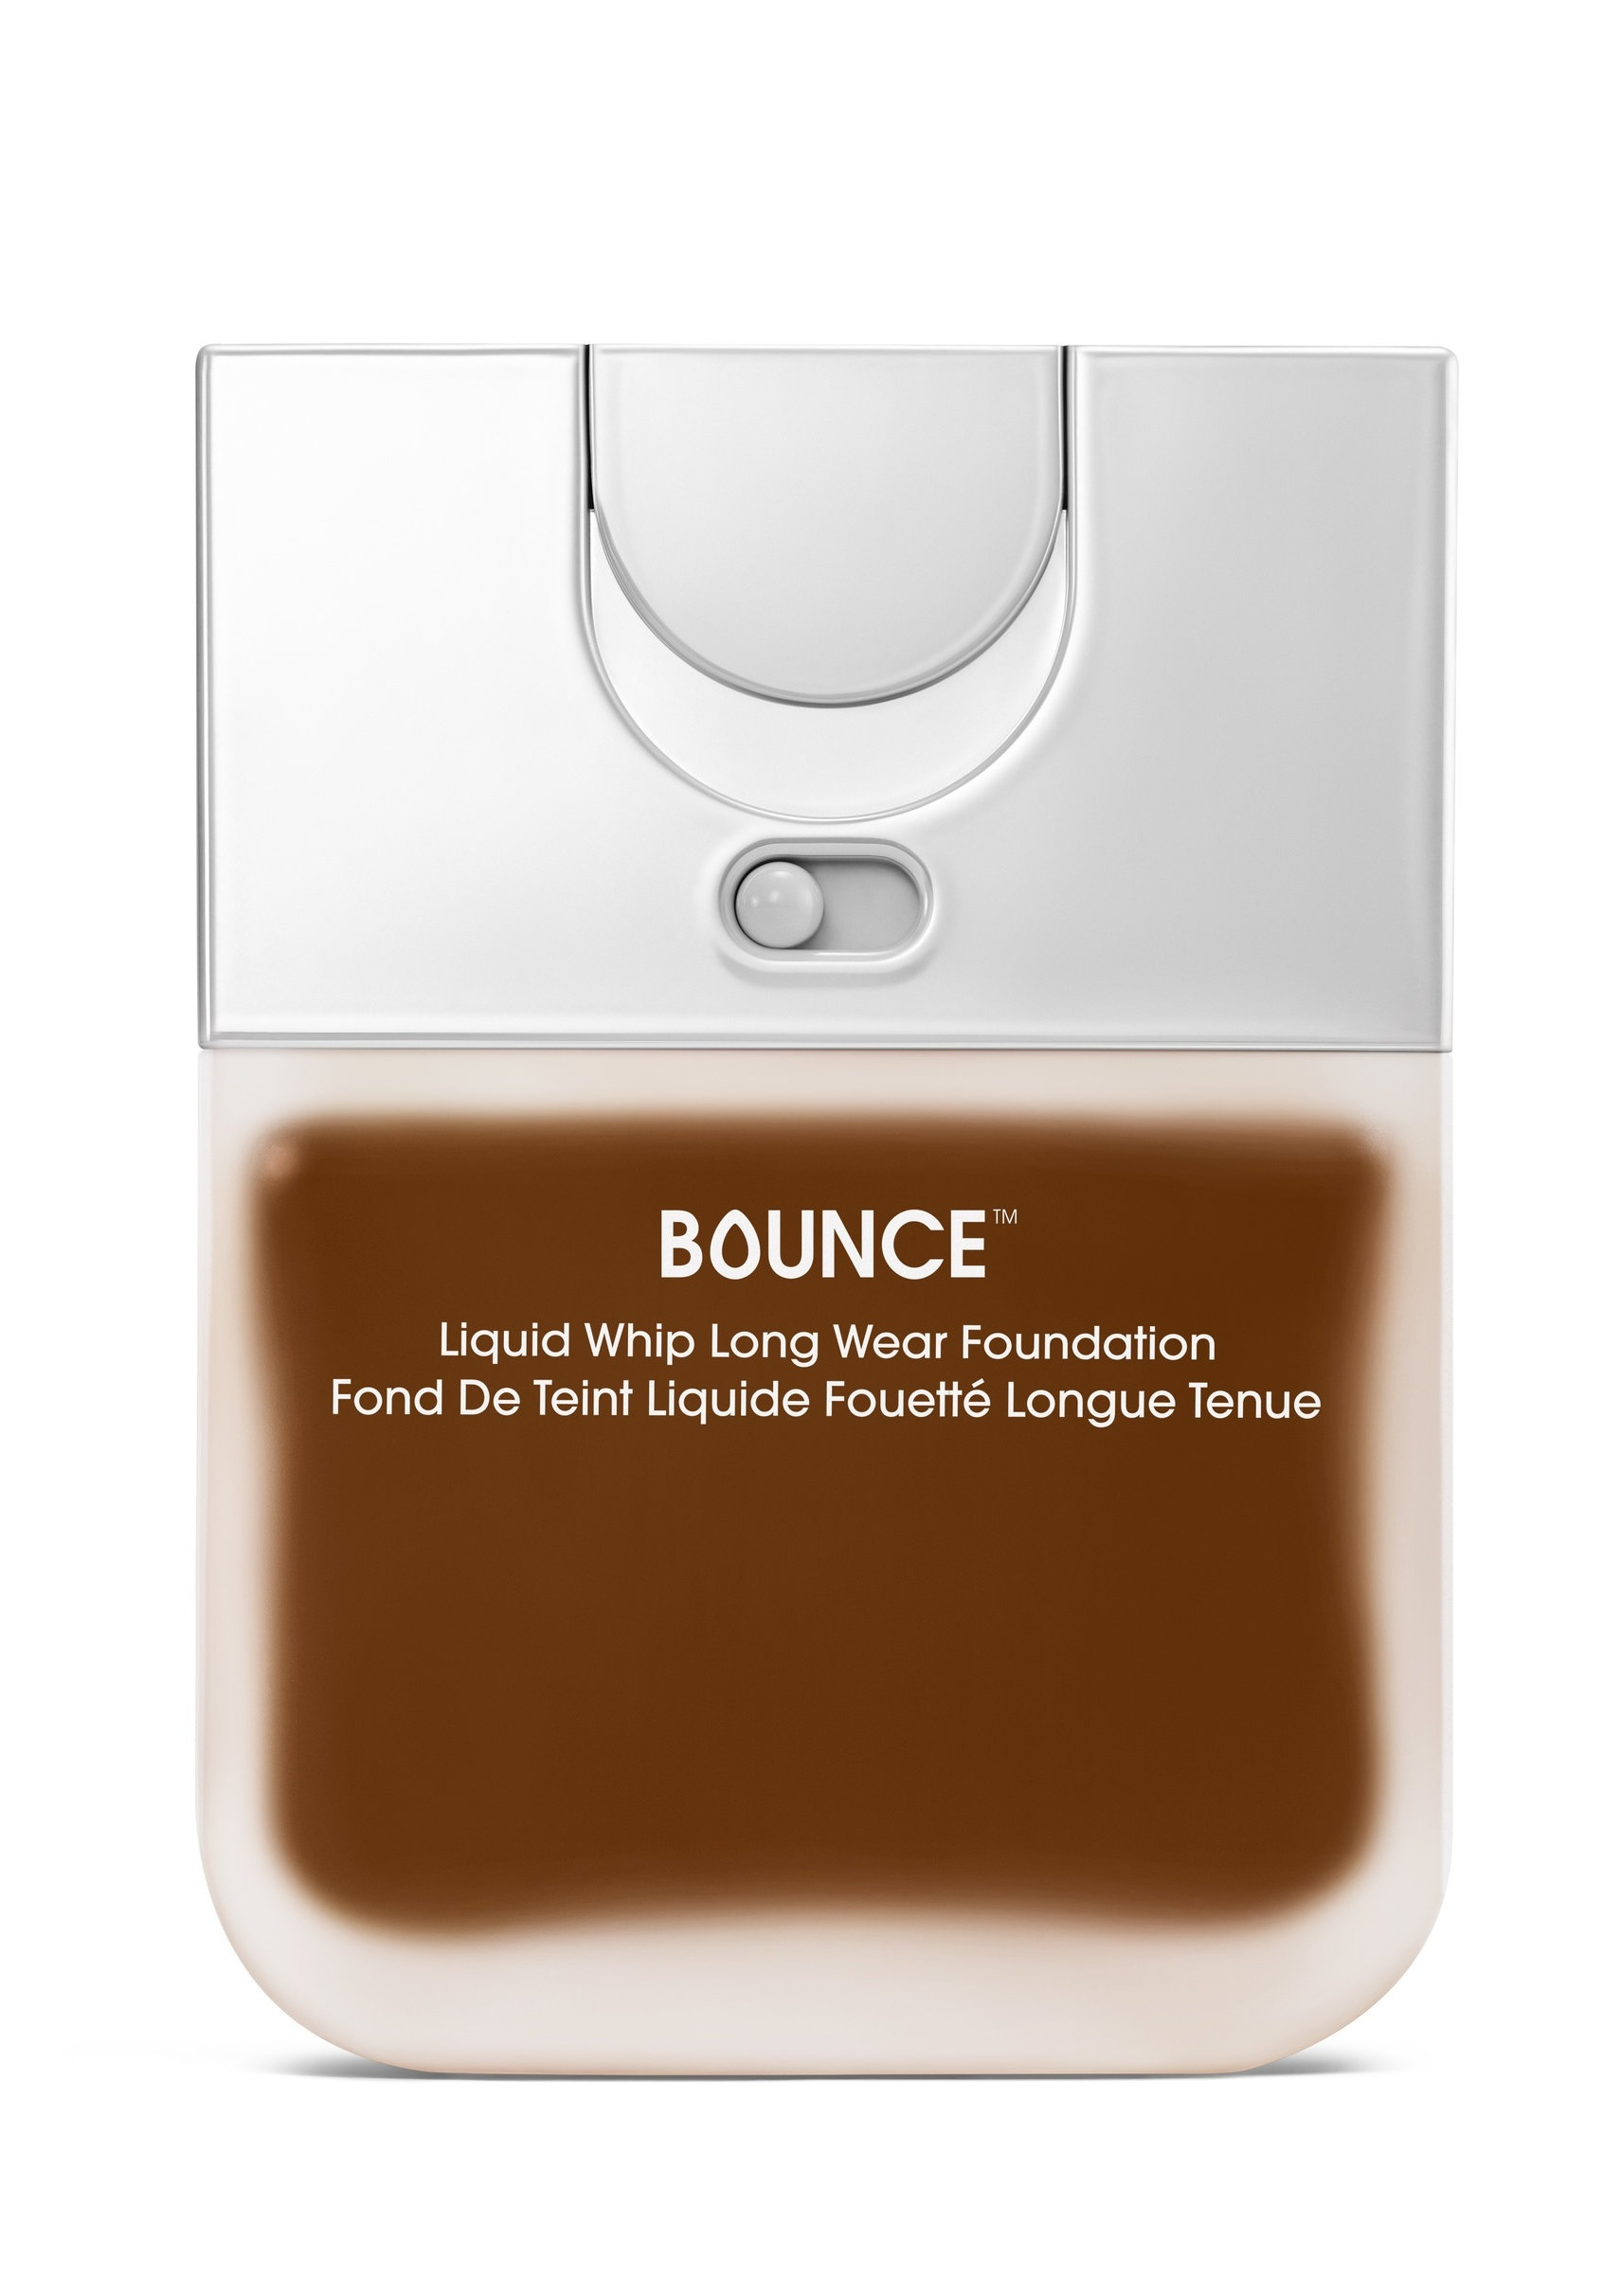 Just Lock It & Go - On the back of Bounce bottle there is a locking mechanism so your product is spill proof and can be safely stored.The frosted glass finish allows the color of the foundation to be visible but hides the mechanism inside, elevating the look of the bottle.